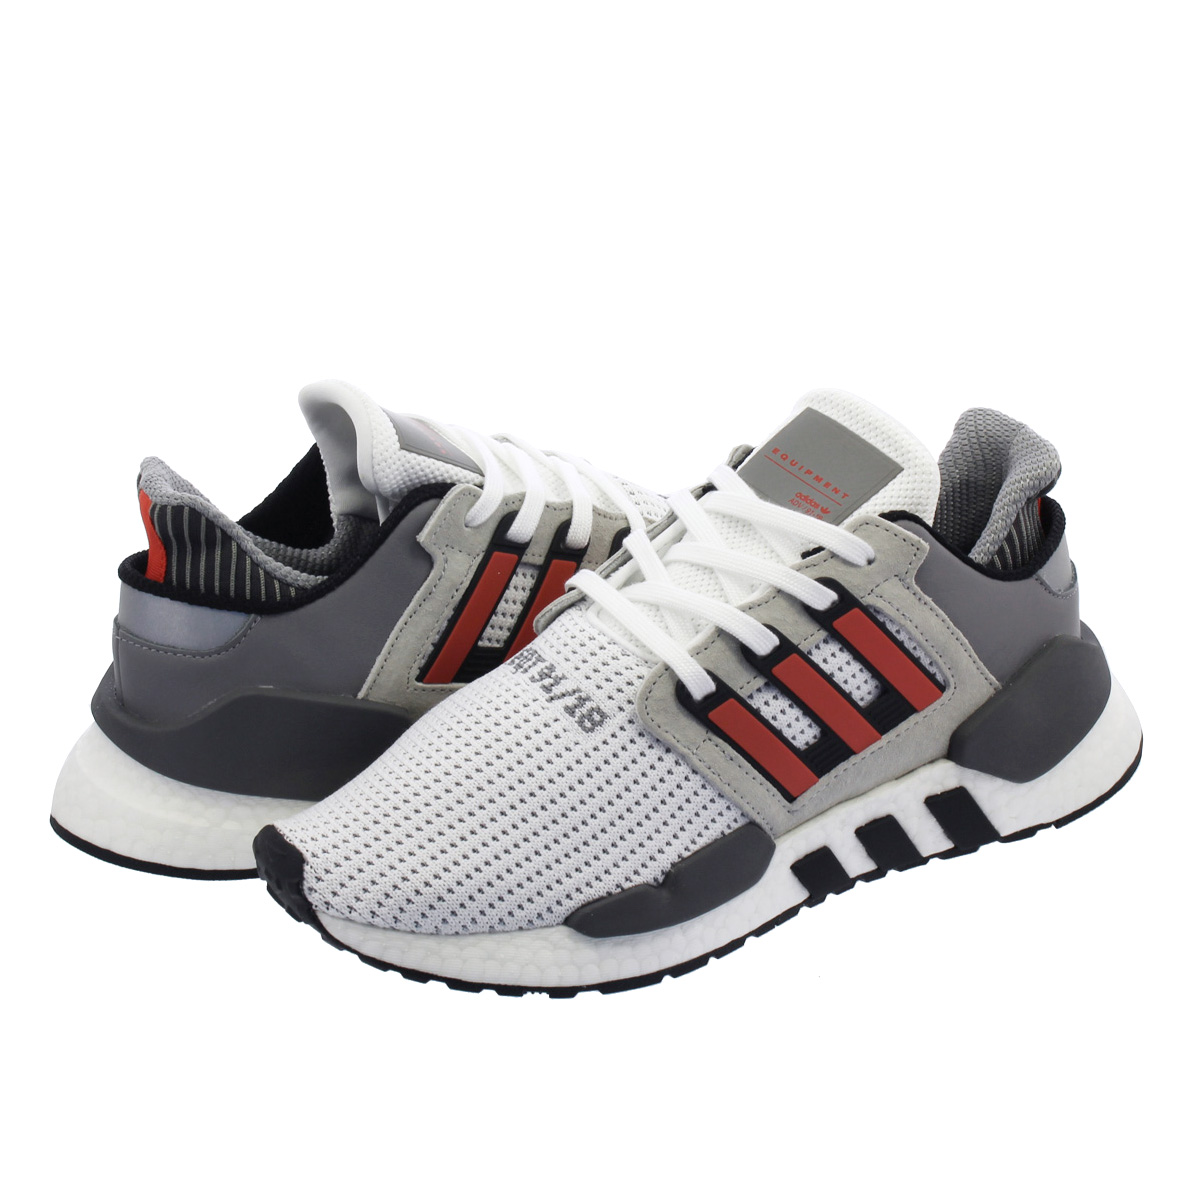 on sale 2539c a5a74 adidas EQT SUPPORT 91/18 Adidas EQT support 91/18 RUNNING WHITE/HI-RES  RED/GREY ONE b37521